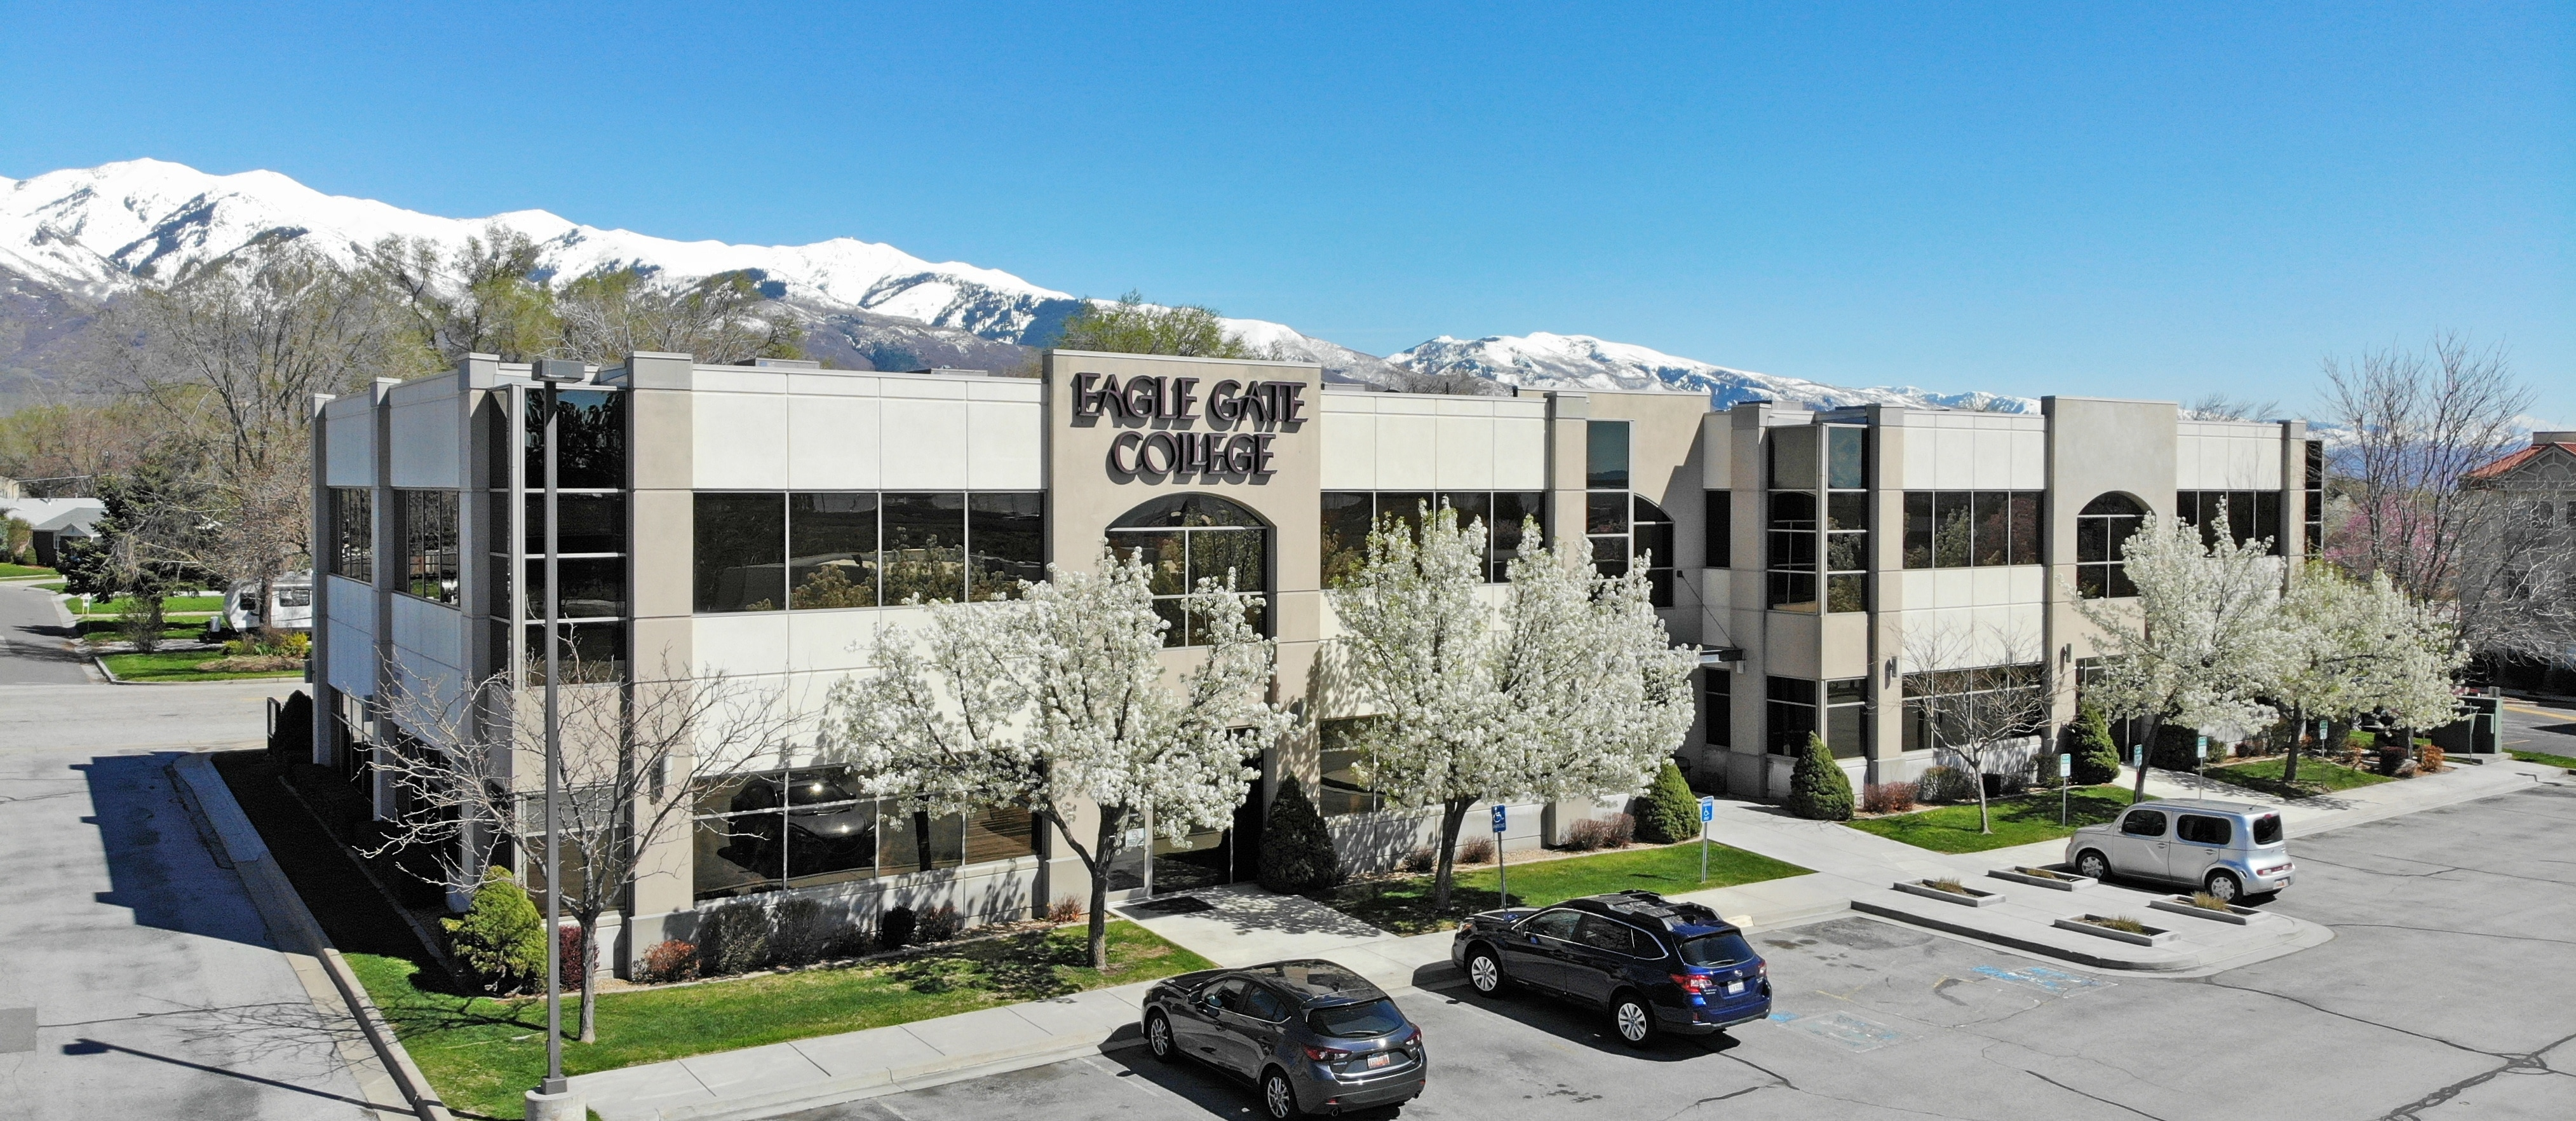 Eagle Gate College Layton Campus